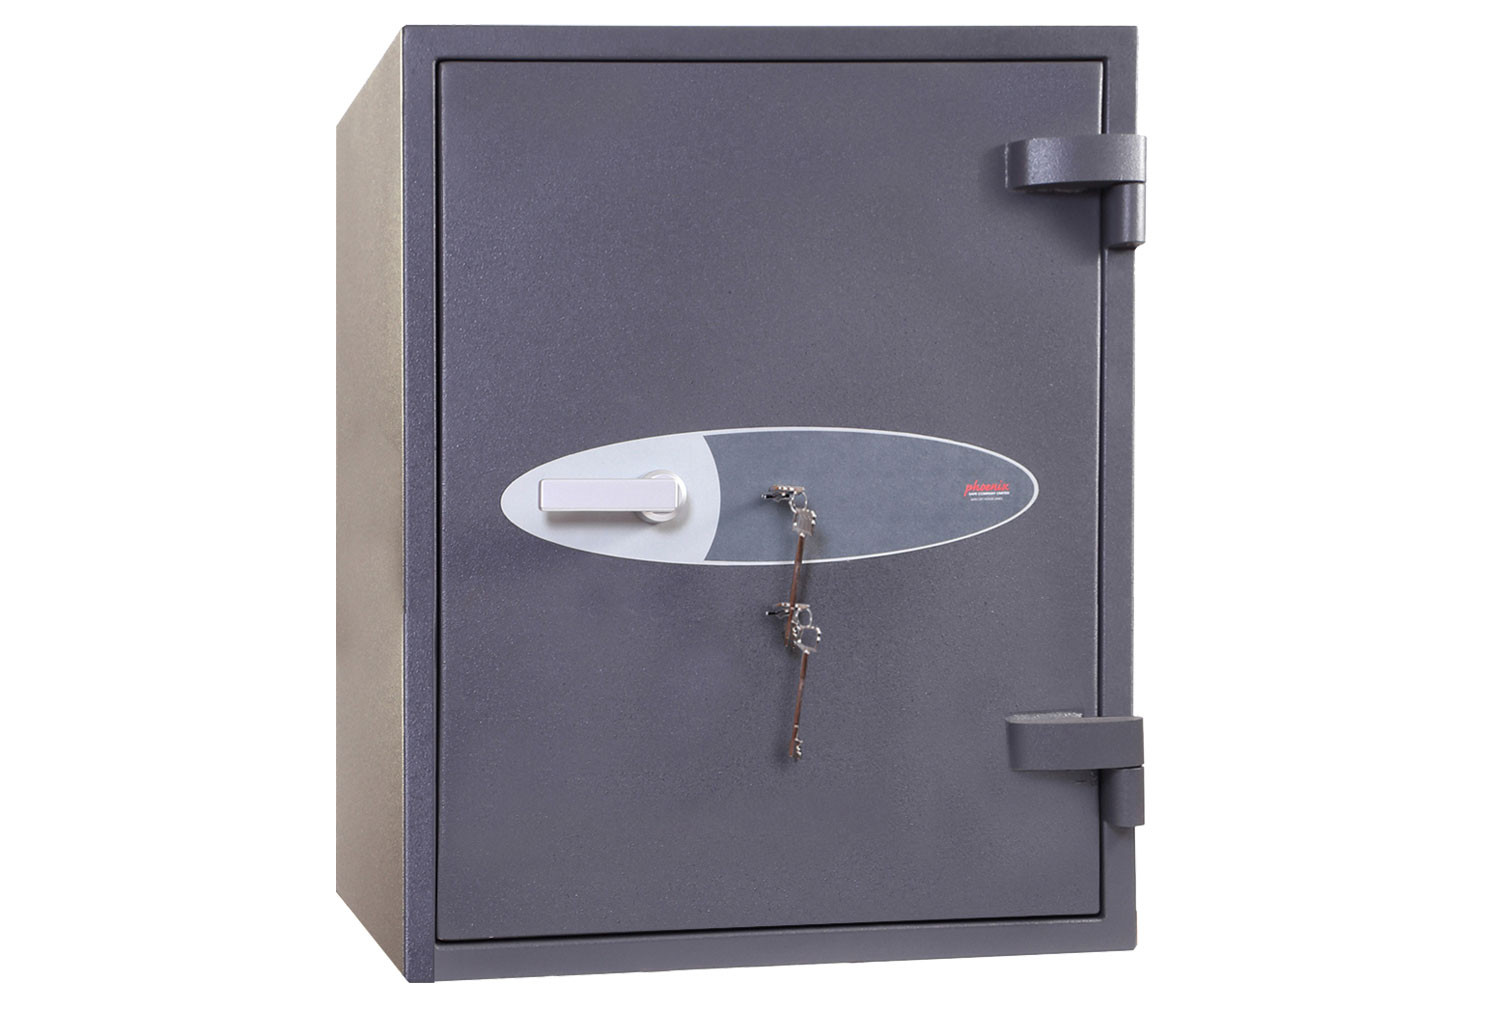 Phoenix Planet HS6073K High Security Safe With Key Lock (129ltrs)